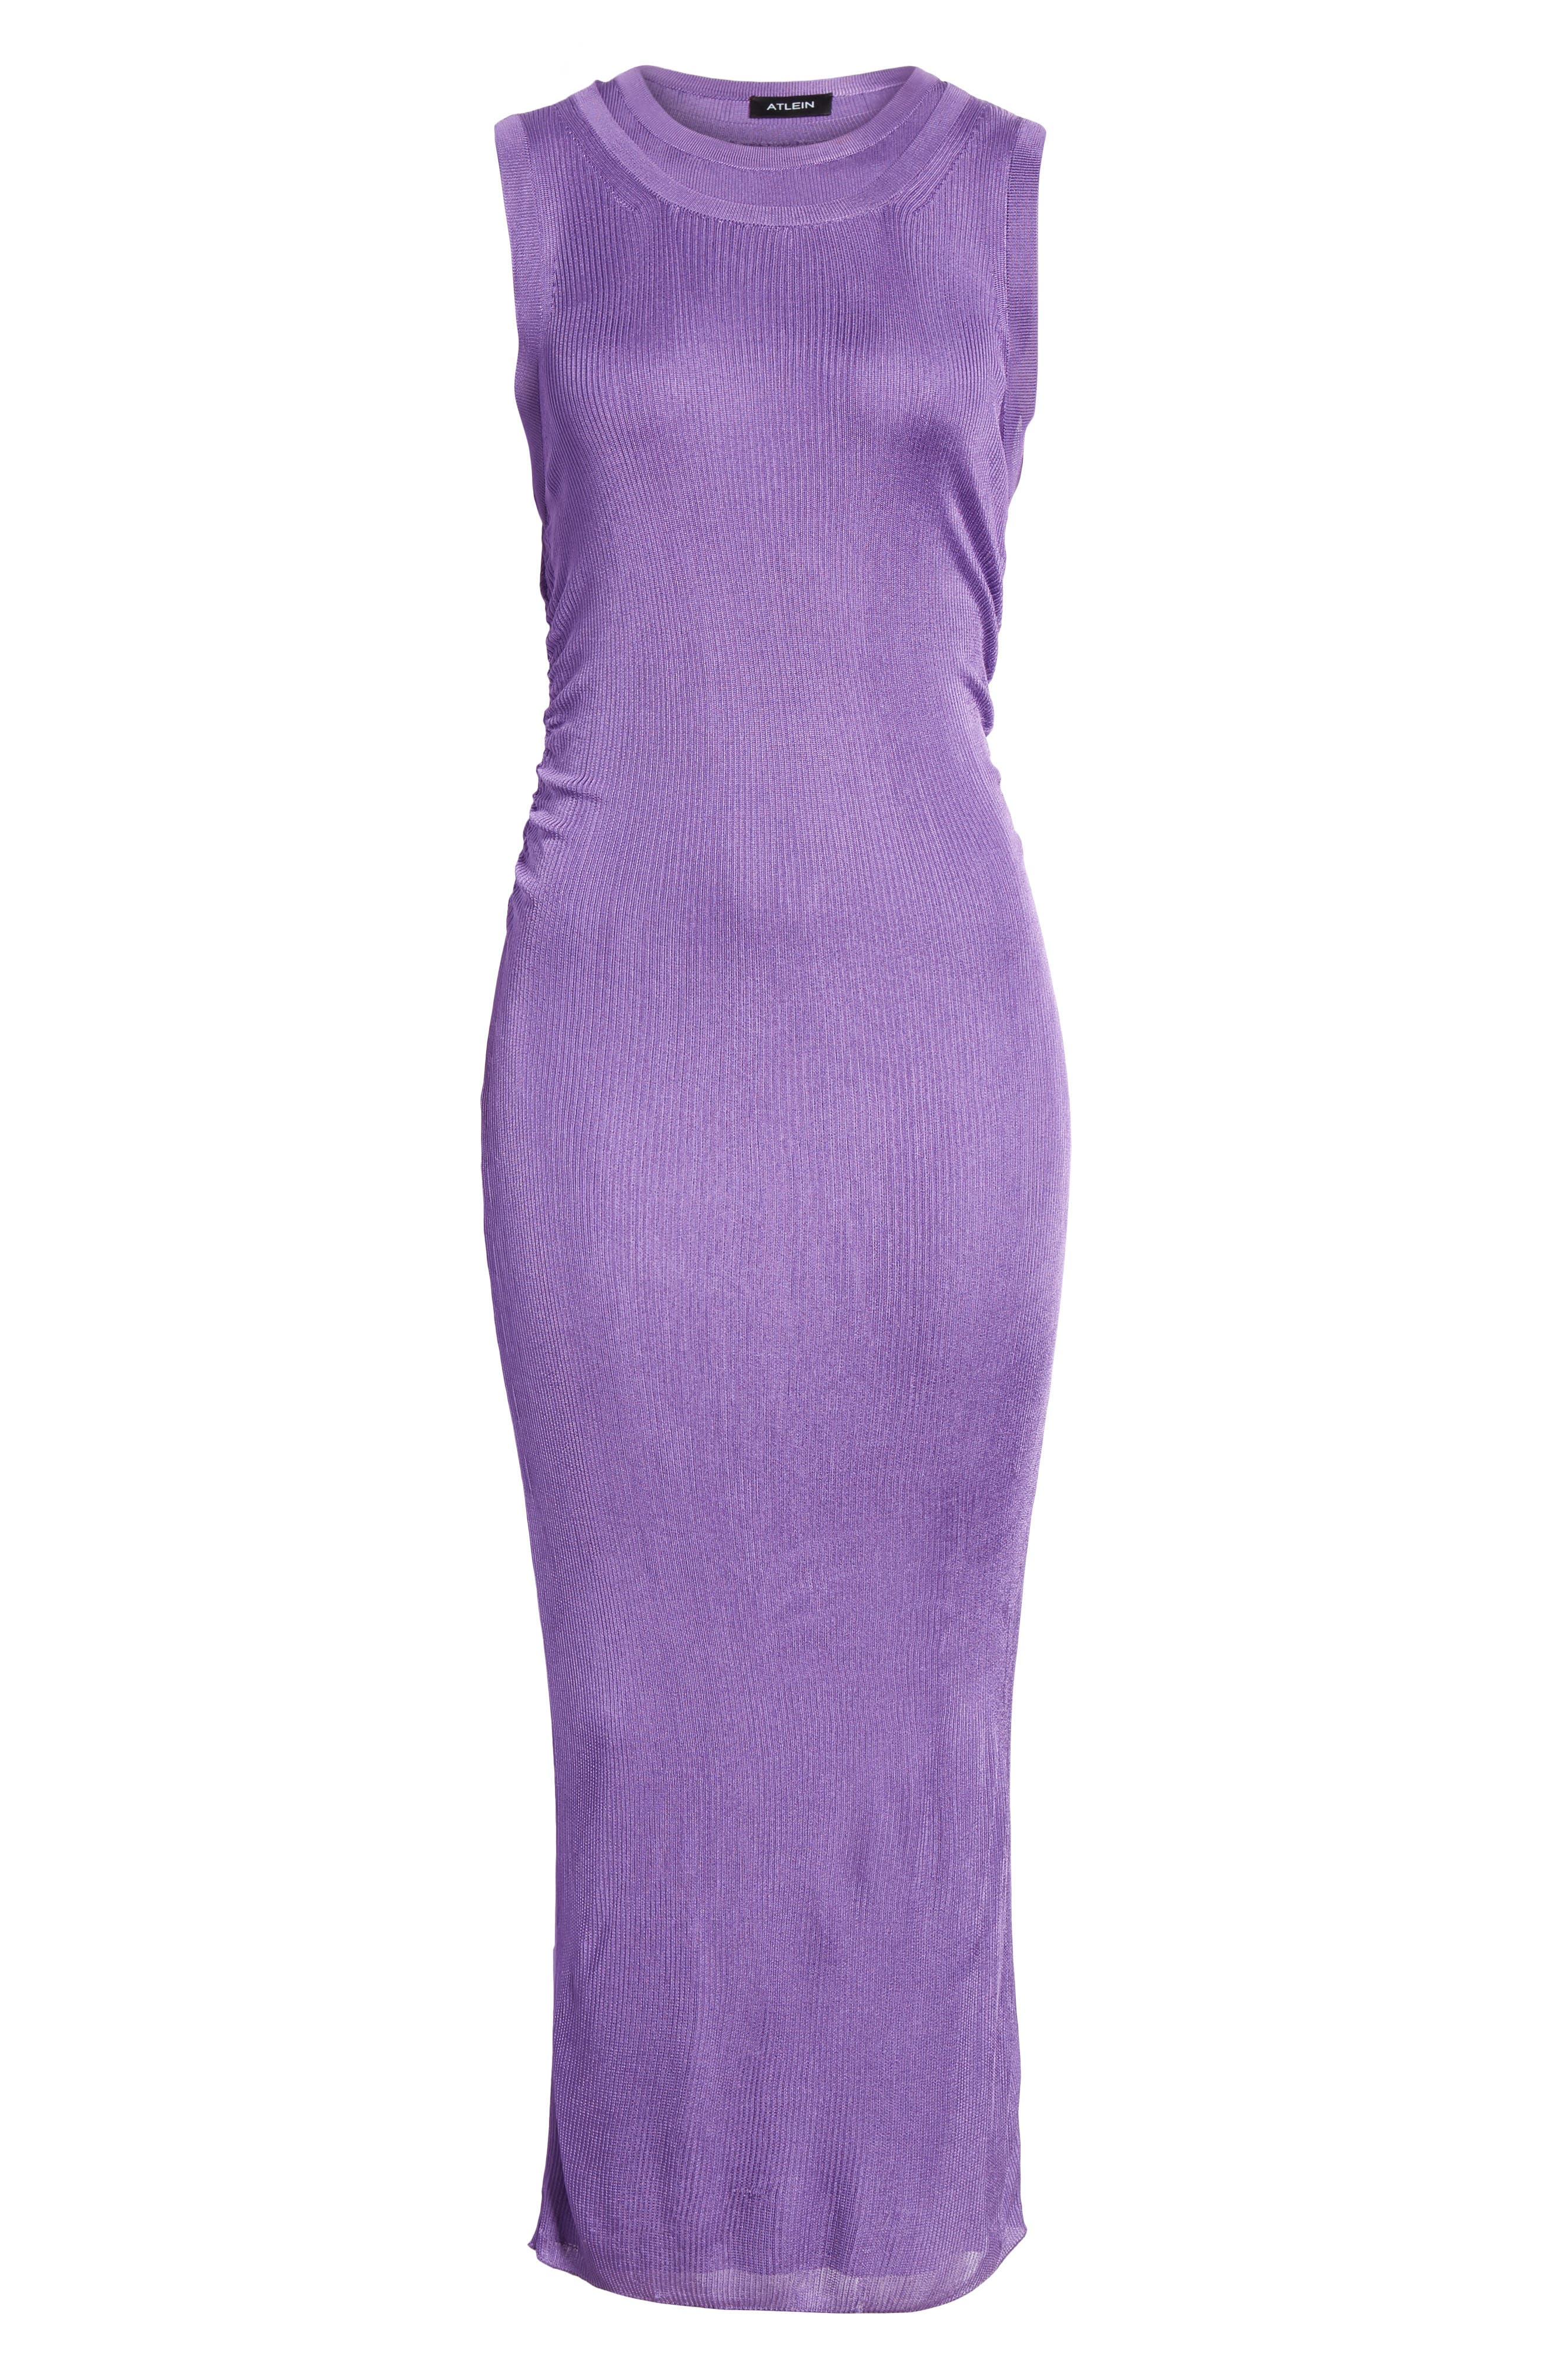 Ruched Side Layered Rib Knit Dress,                             Alternate thumbnail 6, color,                             500